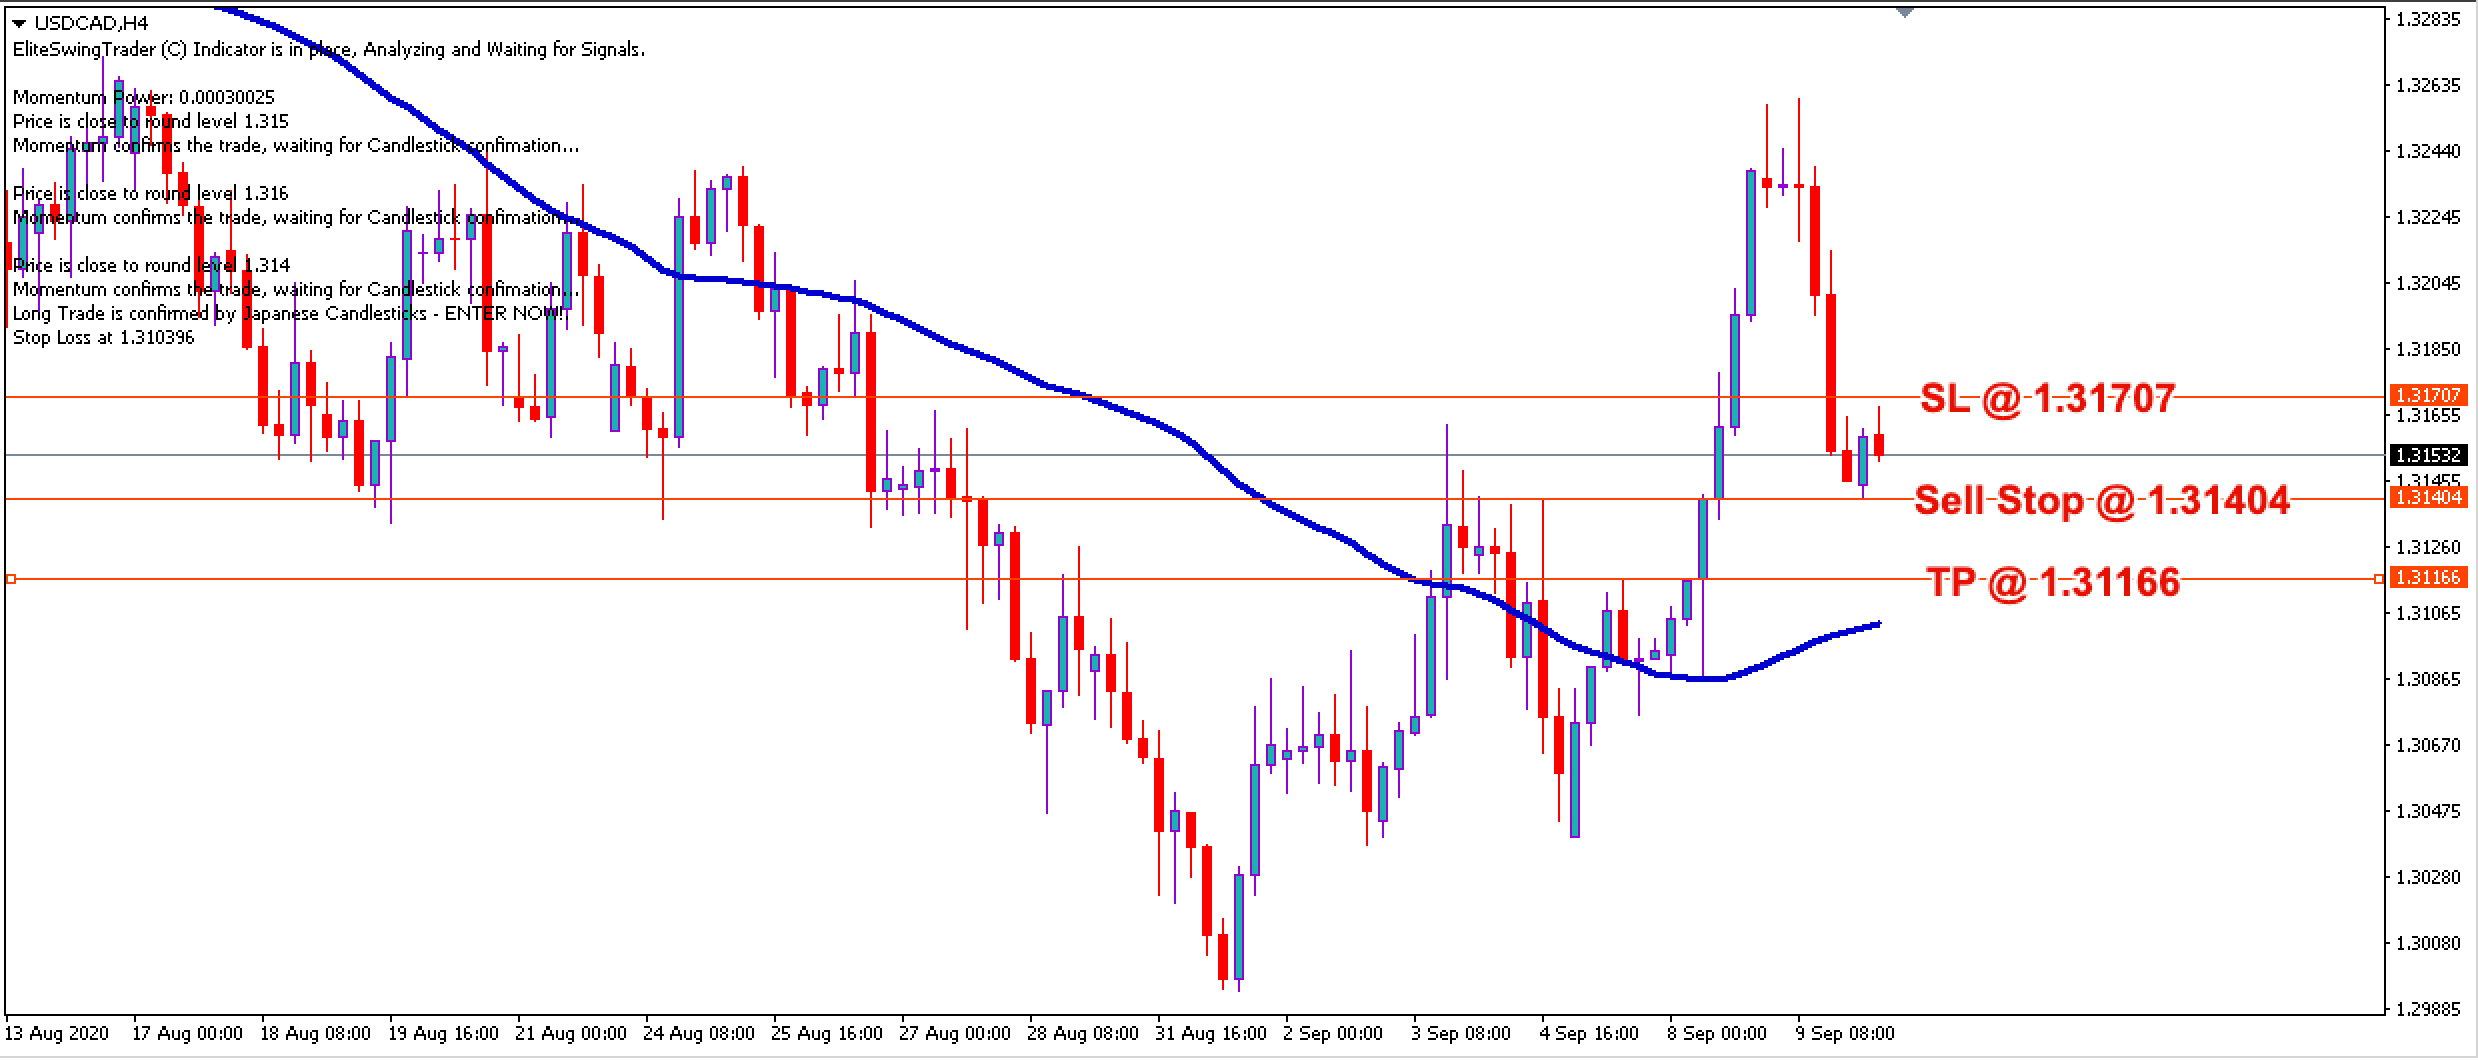 USD/CAD Daily Price Forecast - 10th Sept 2020